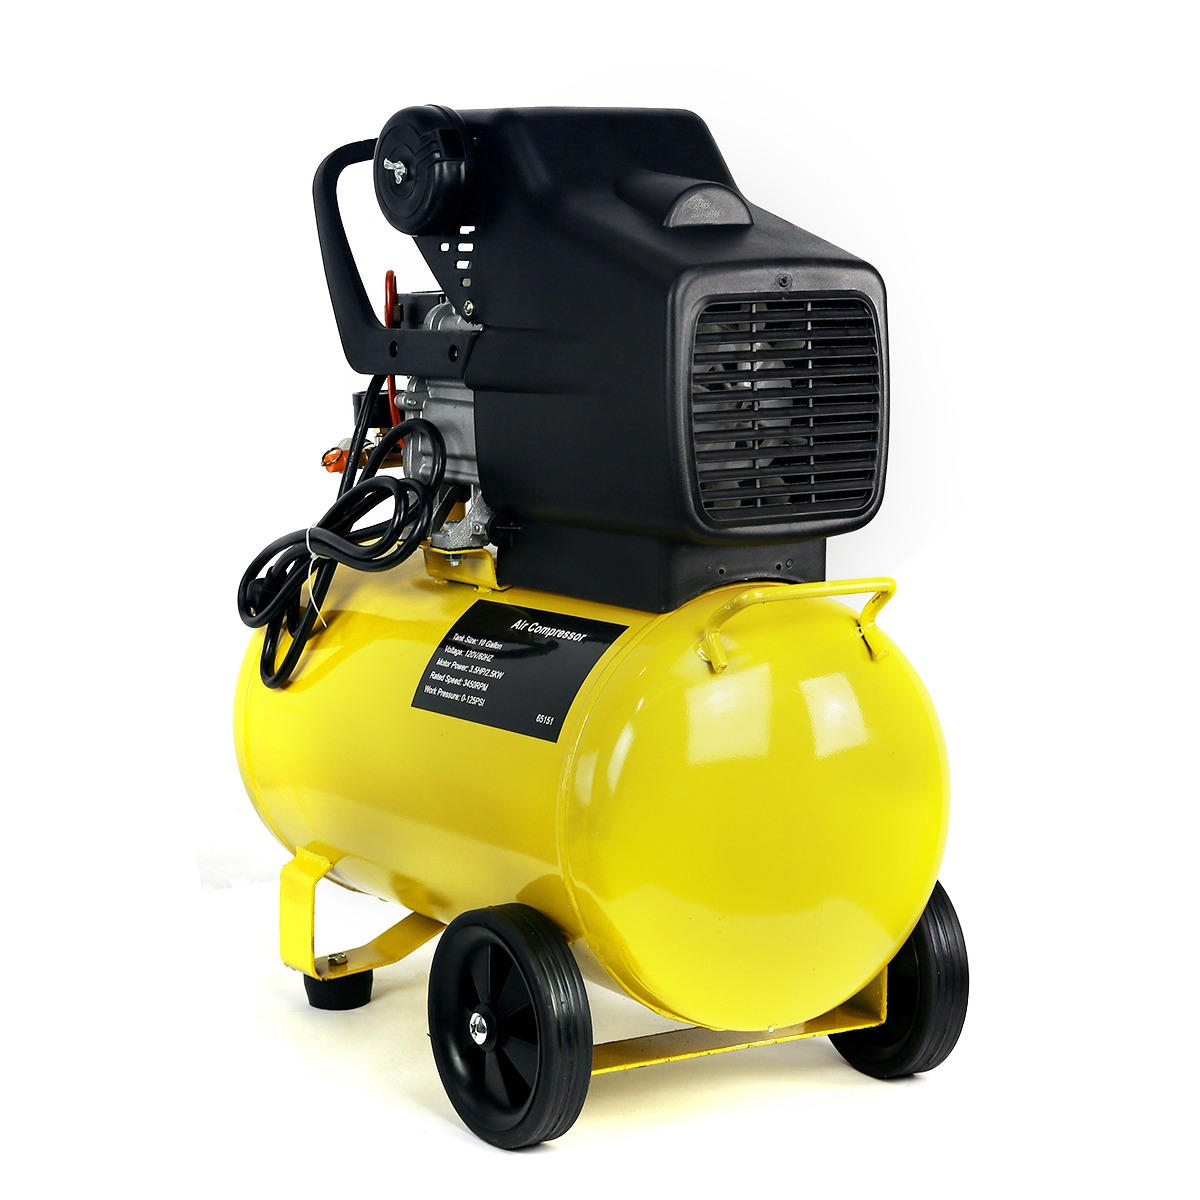 10Gal Air Compressor 3.5HP 125PSI Adjustable Pressure